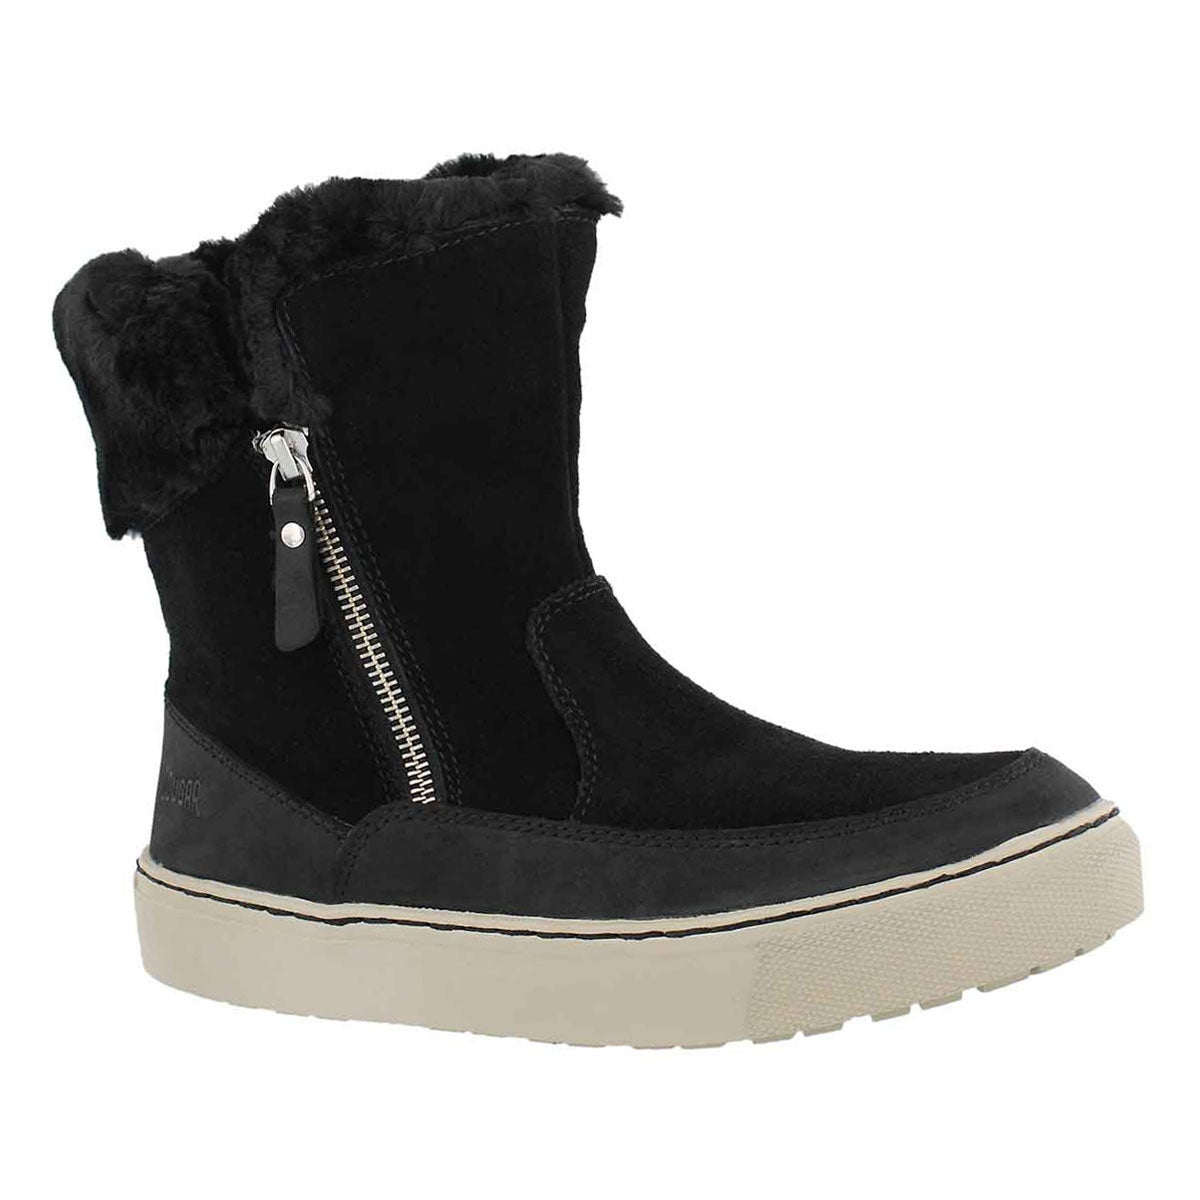 Women's DRESDEN blk wtp side zip winter boots